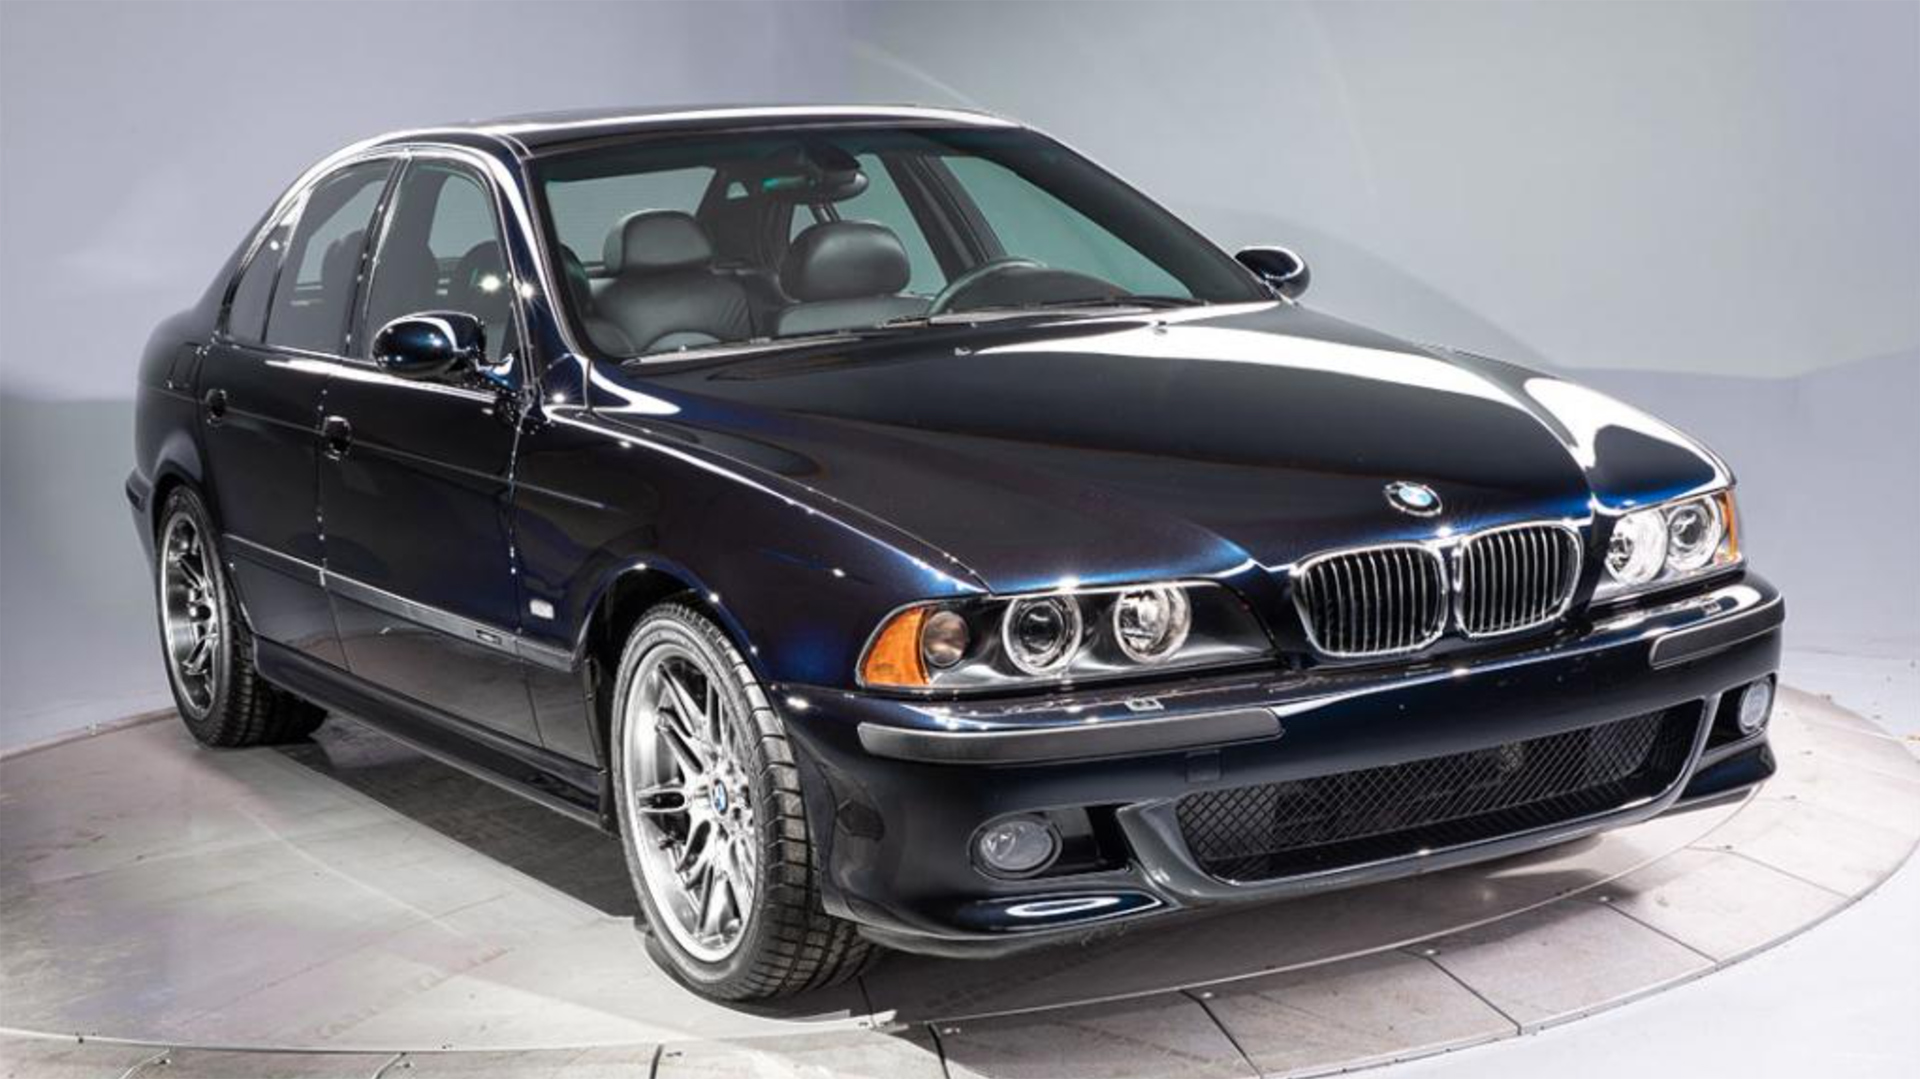 The BMW M5 E39 may be even hotter than we thought